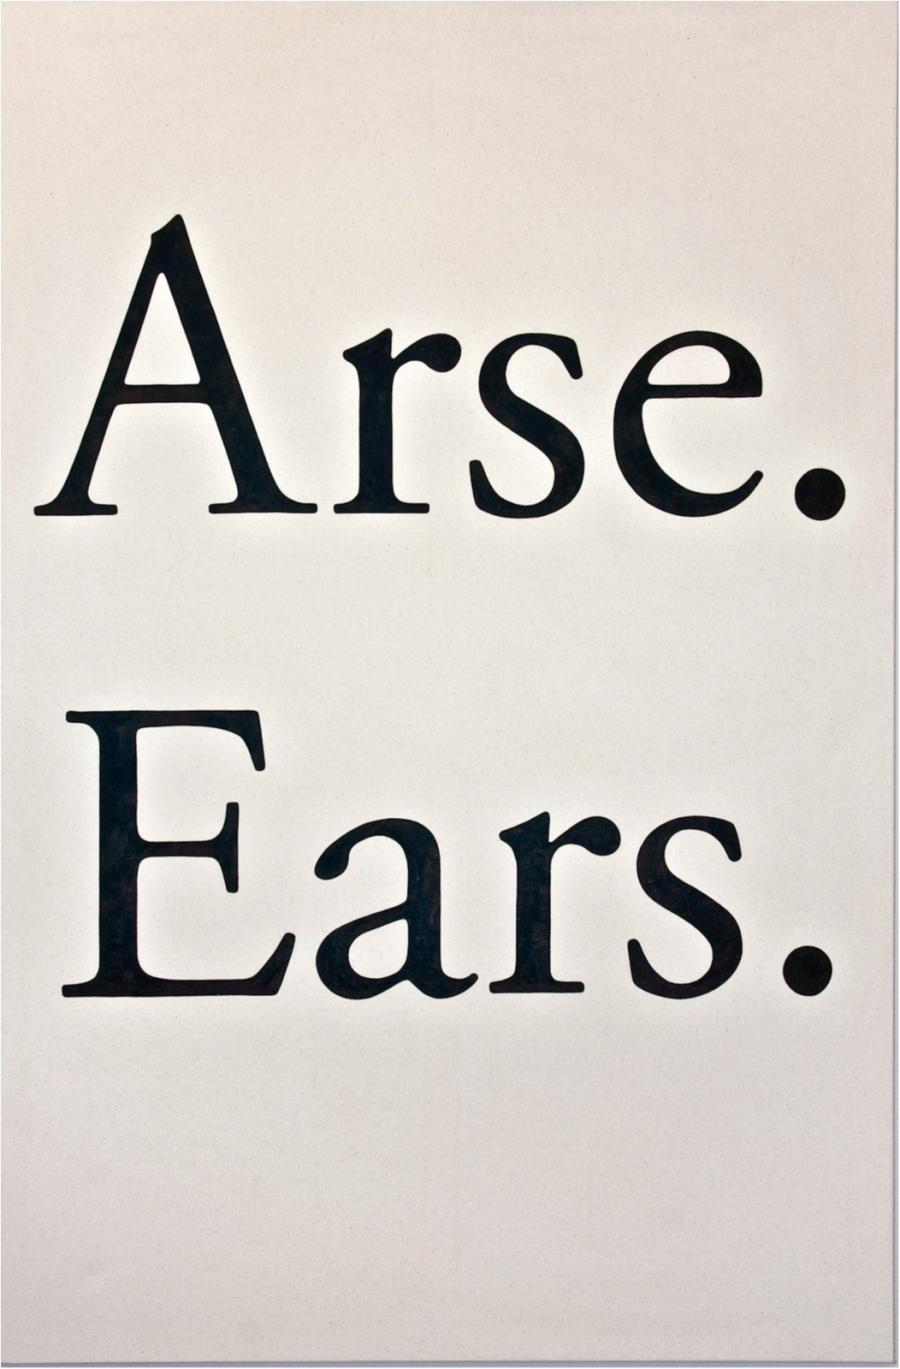 Arse Ears. (2011)